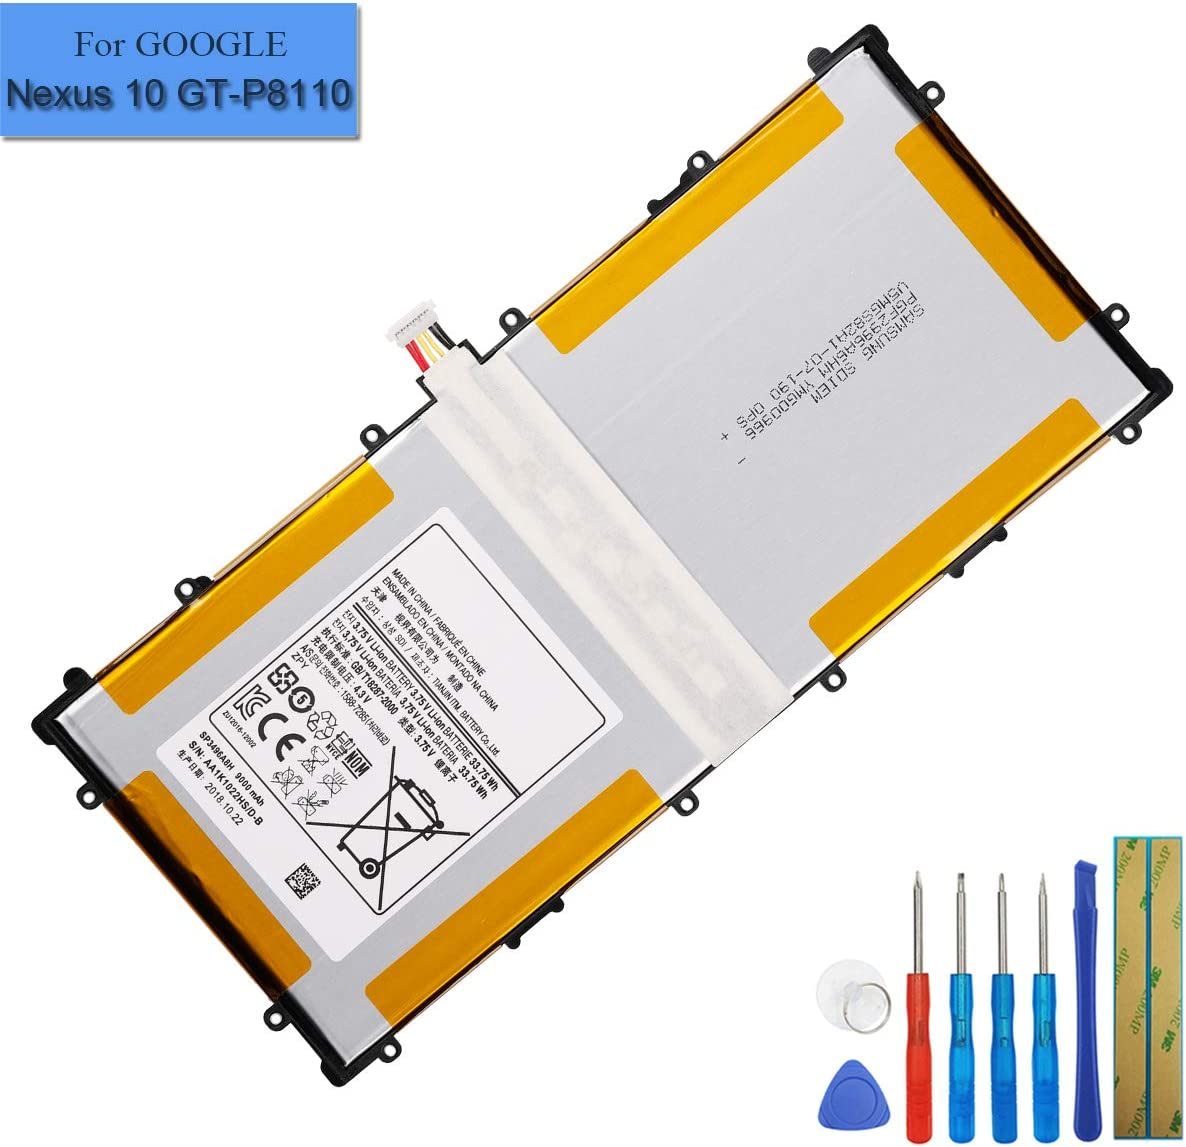 1S2P Battery for Google Nexus 10,Samsung GT-P8110 GTP8110 HA32ARB SP3496A8H US